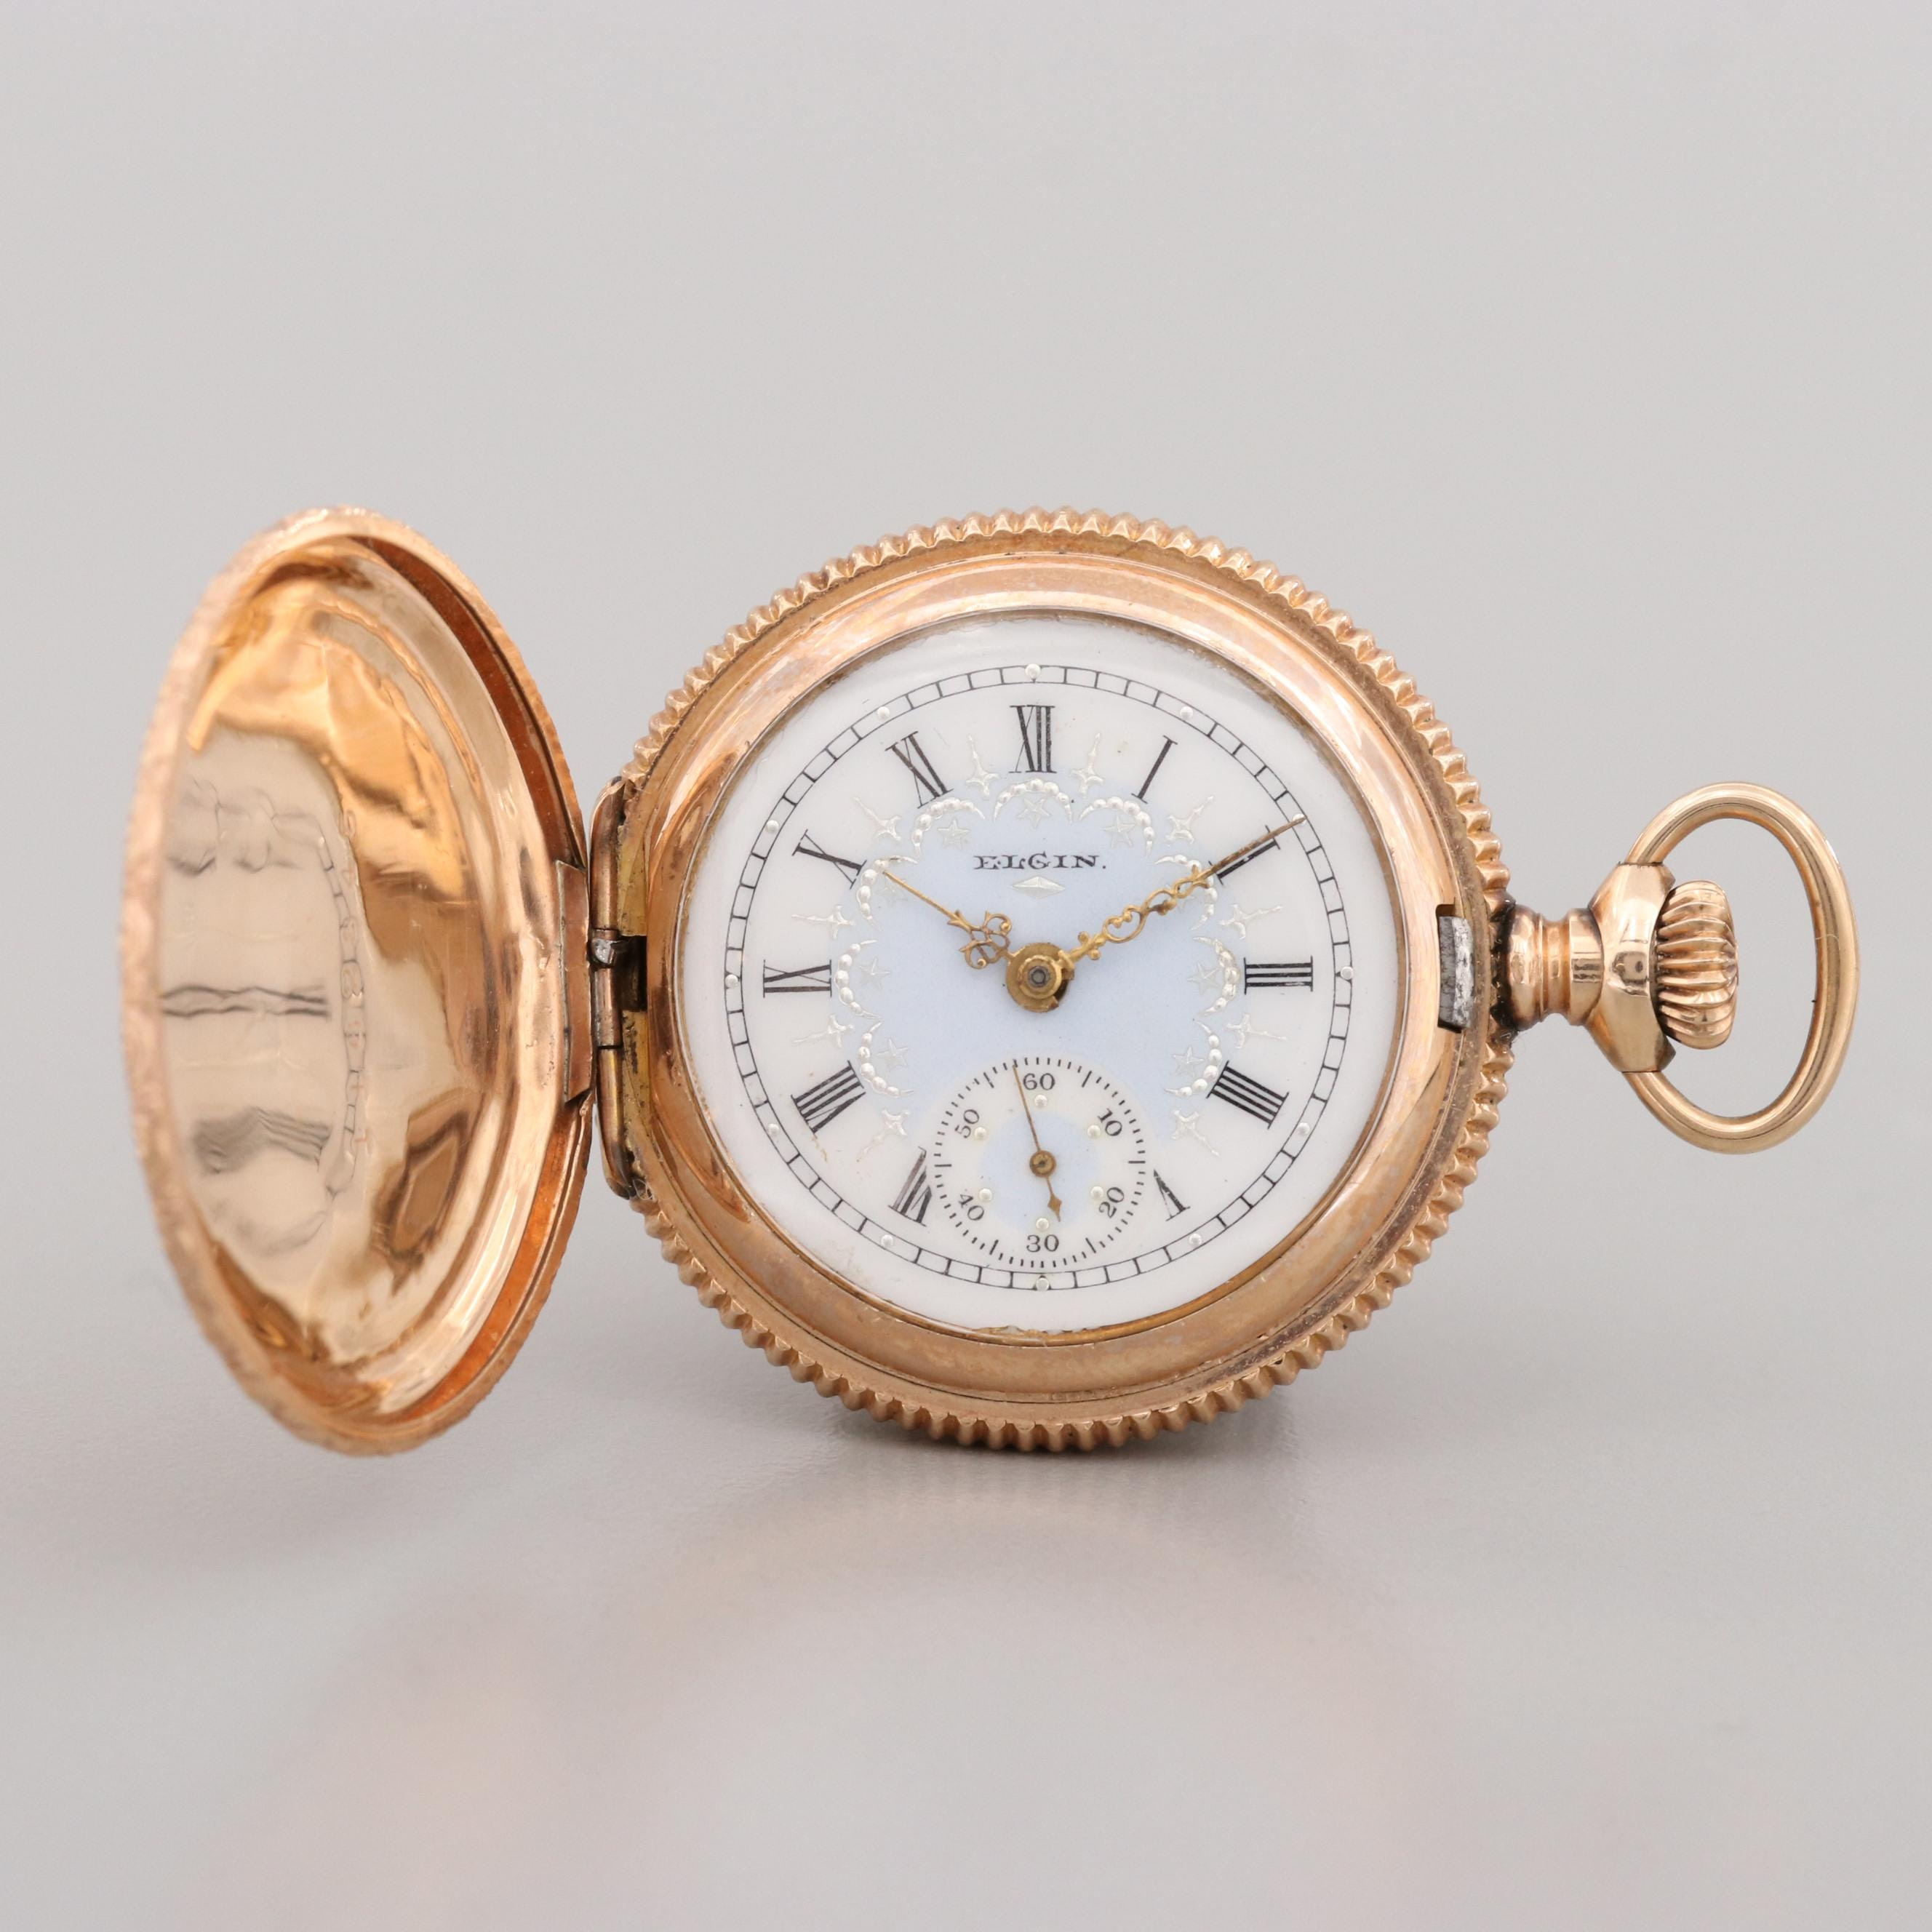 Antique Elgin Green and Yellow Gold Filled Pocket Watch, 1904